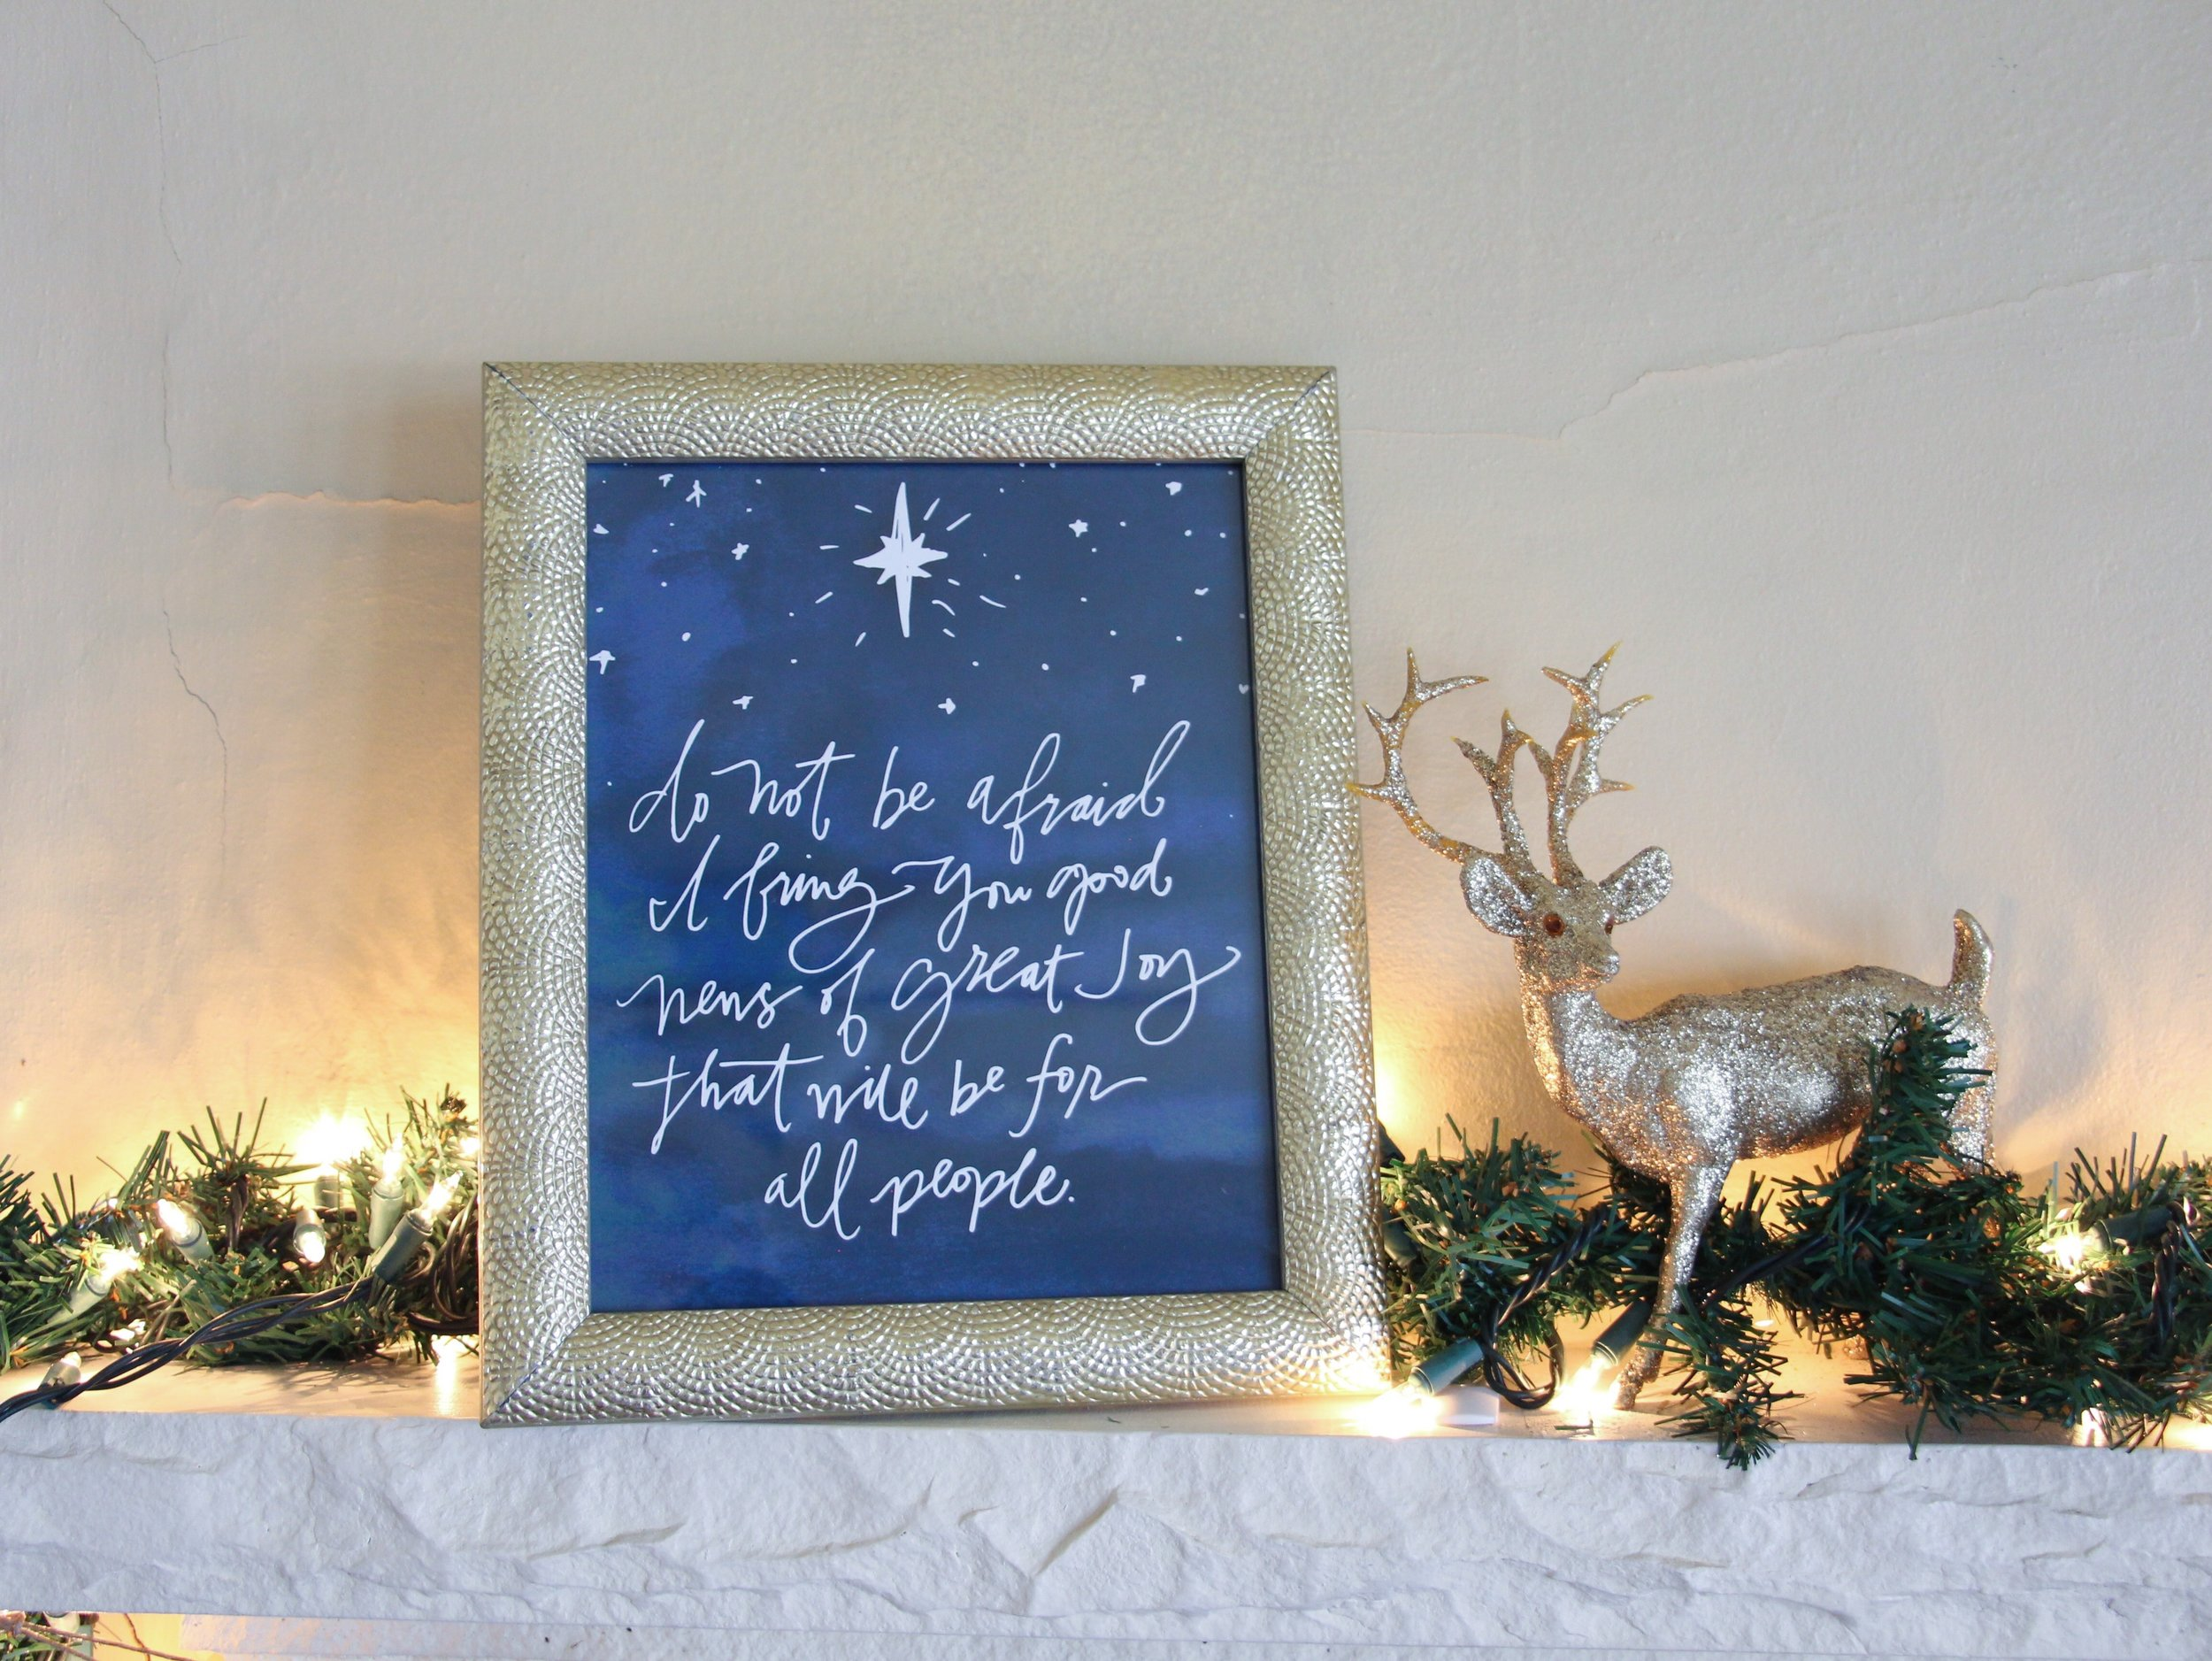 Luke 2:10 image by Mindy Larsen